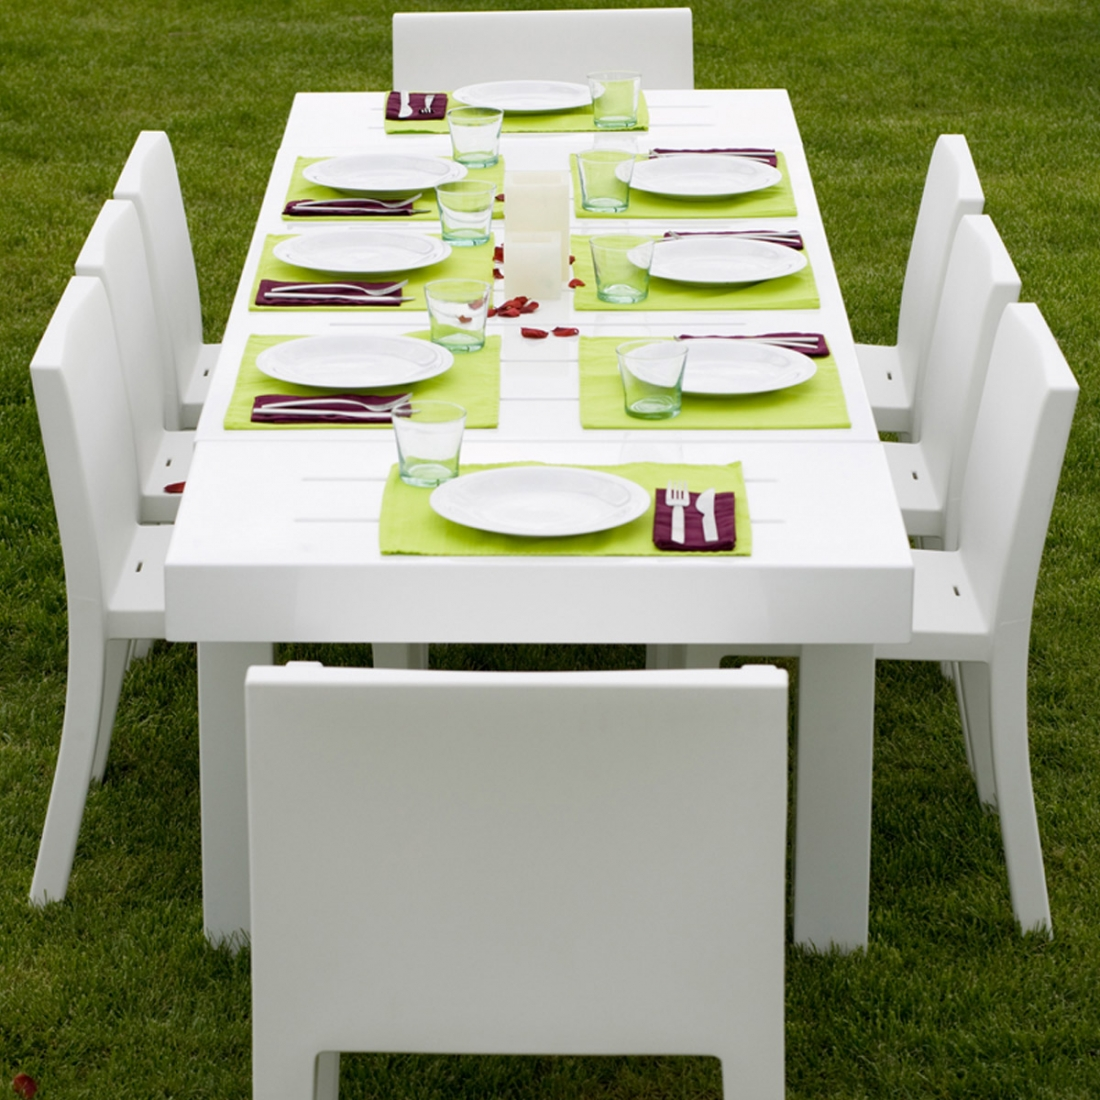 Table de jardin design 8 personnes jut zendart design for Table jardin 8 personnes